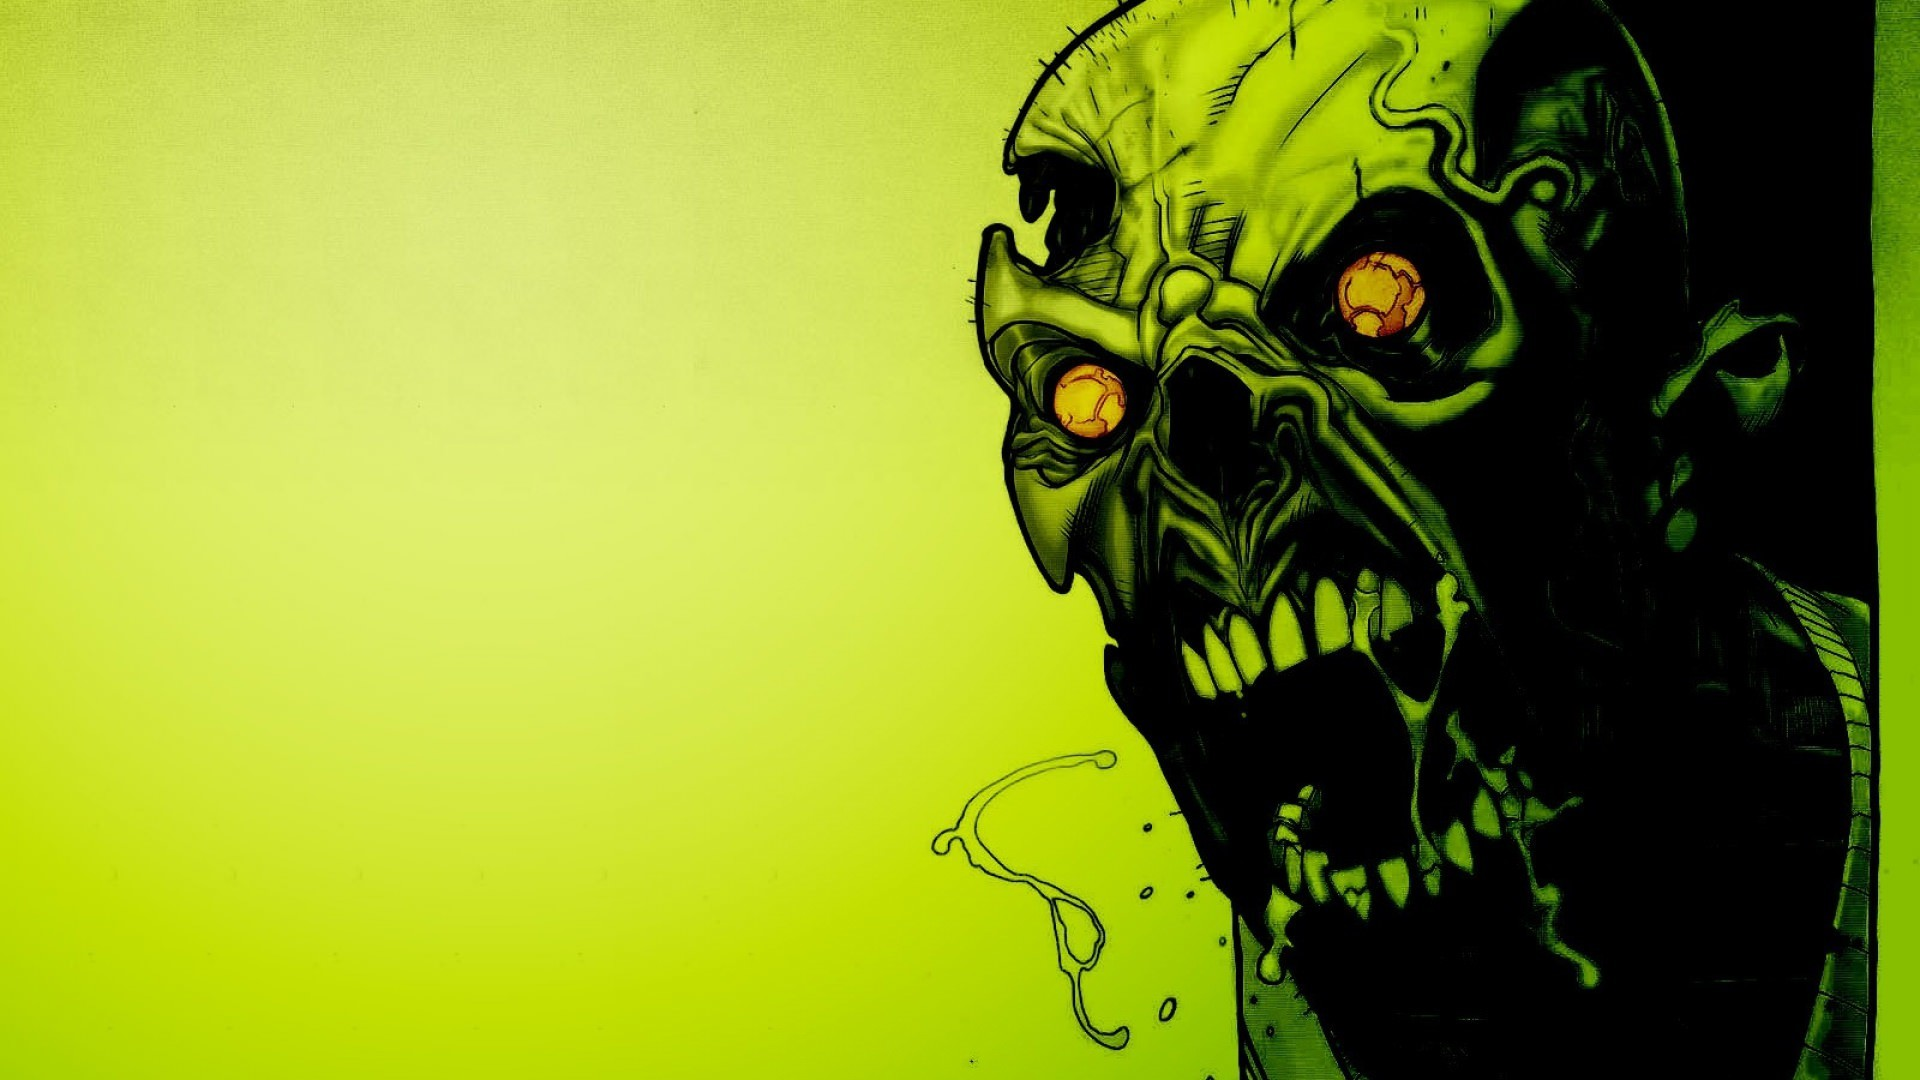 Res: 1920x1080, Full Hd Background of Scary Green Skull